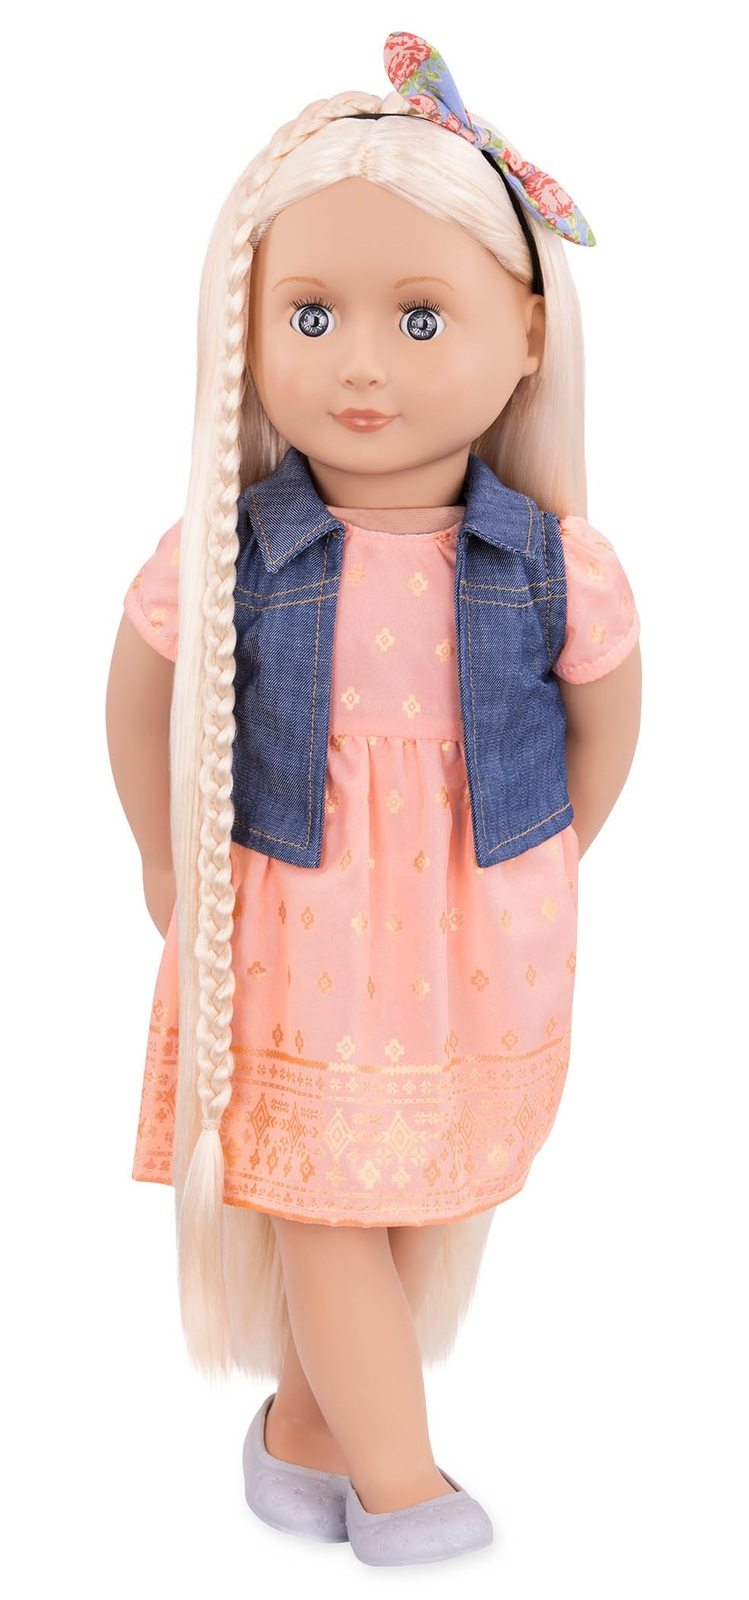 """Our Generation: 18"""" Hairgrow Doll - Lyra image"""